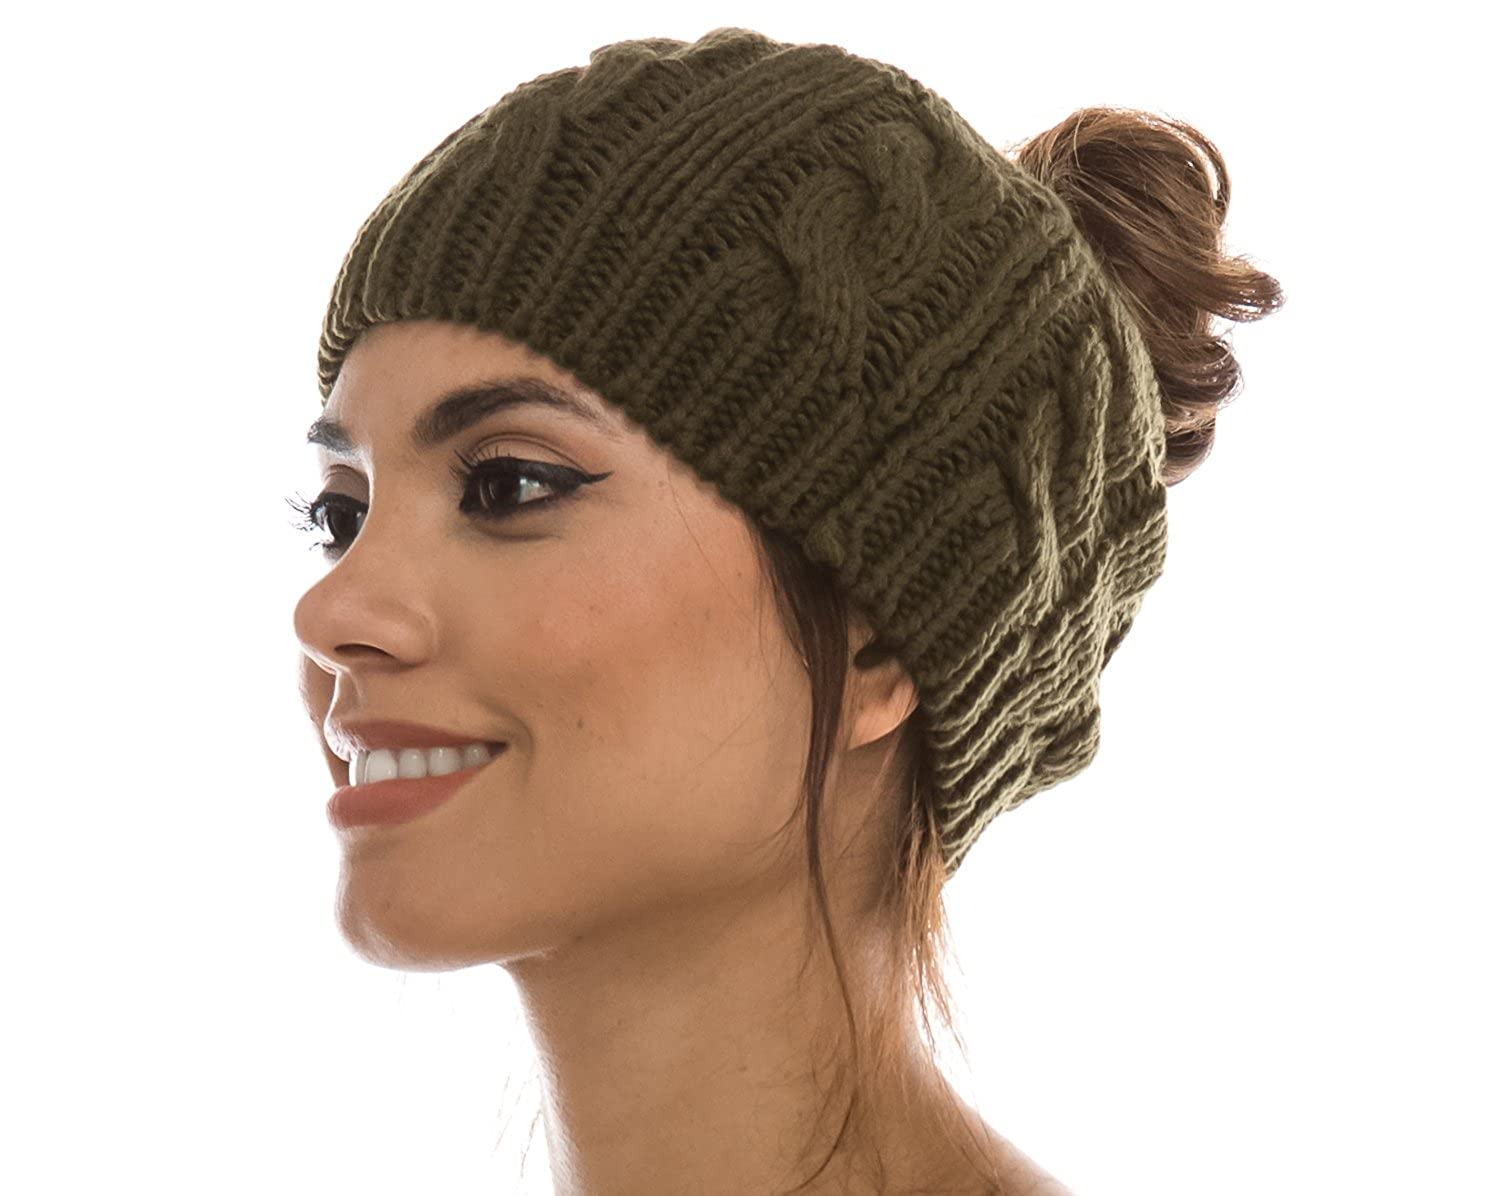 eceb9d4f83b3dd Women Crochet Ponytail Messy High Bun Beanie Winter Hat, Slouchy Cable Knit  Twist (Beige) at Amazon Women's Clothing store: